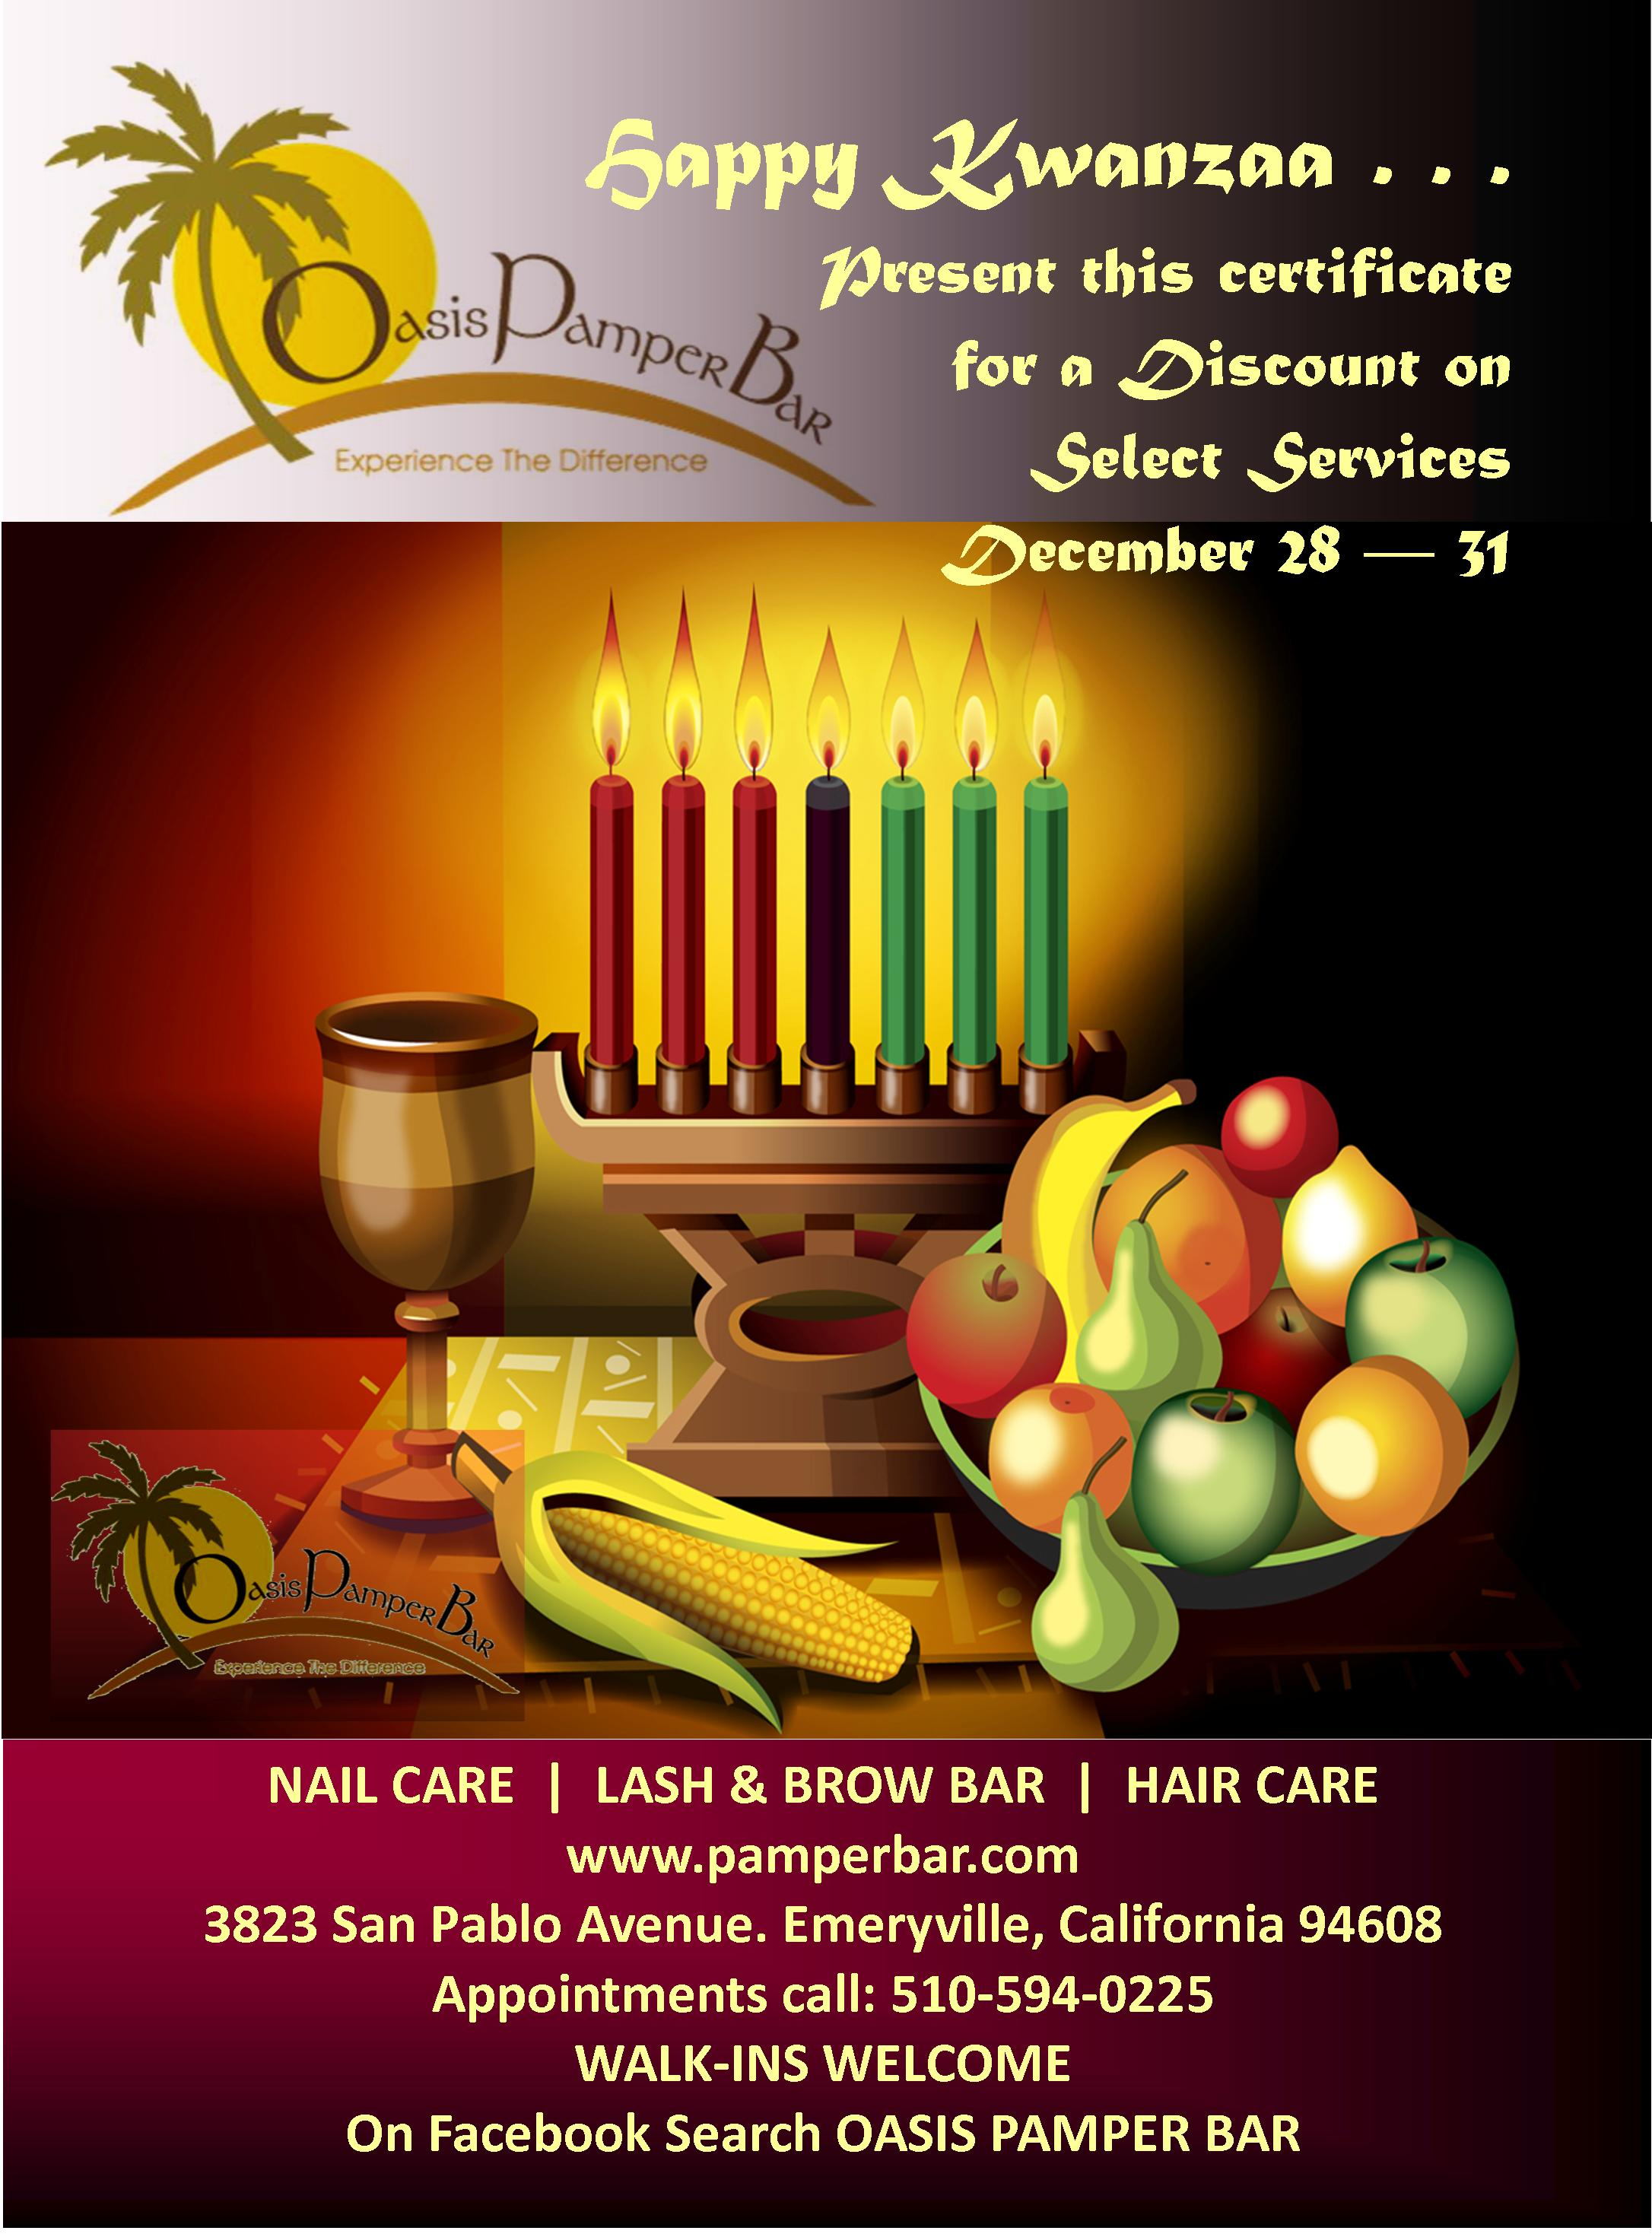 Oasis Pamper Bar Wishes You A Happy Kwanzaa With Discounts